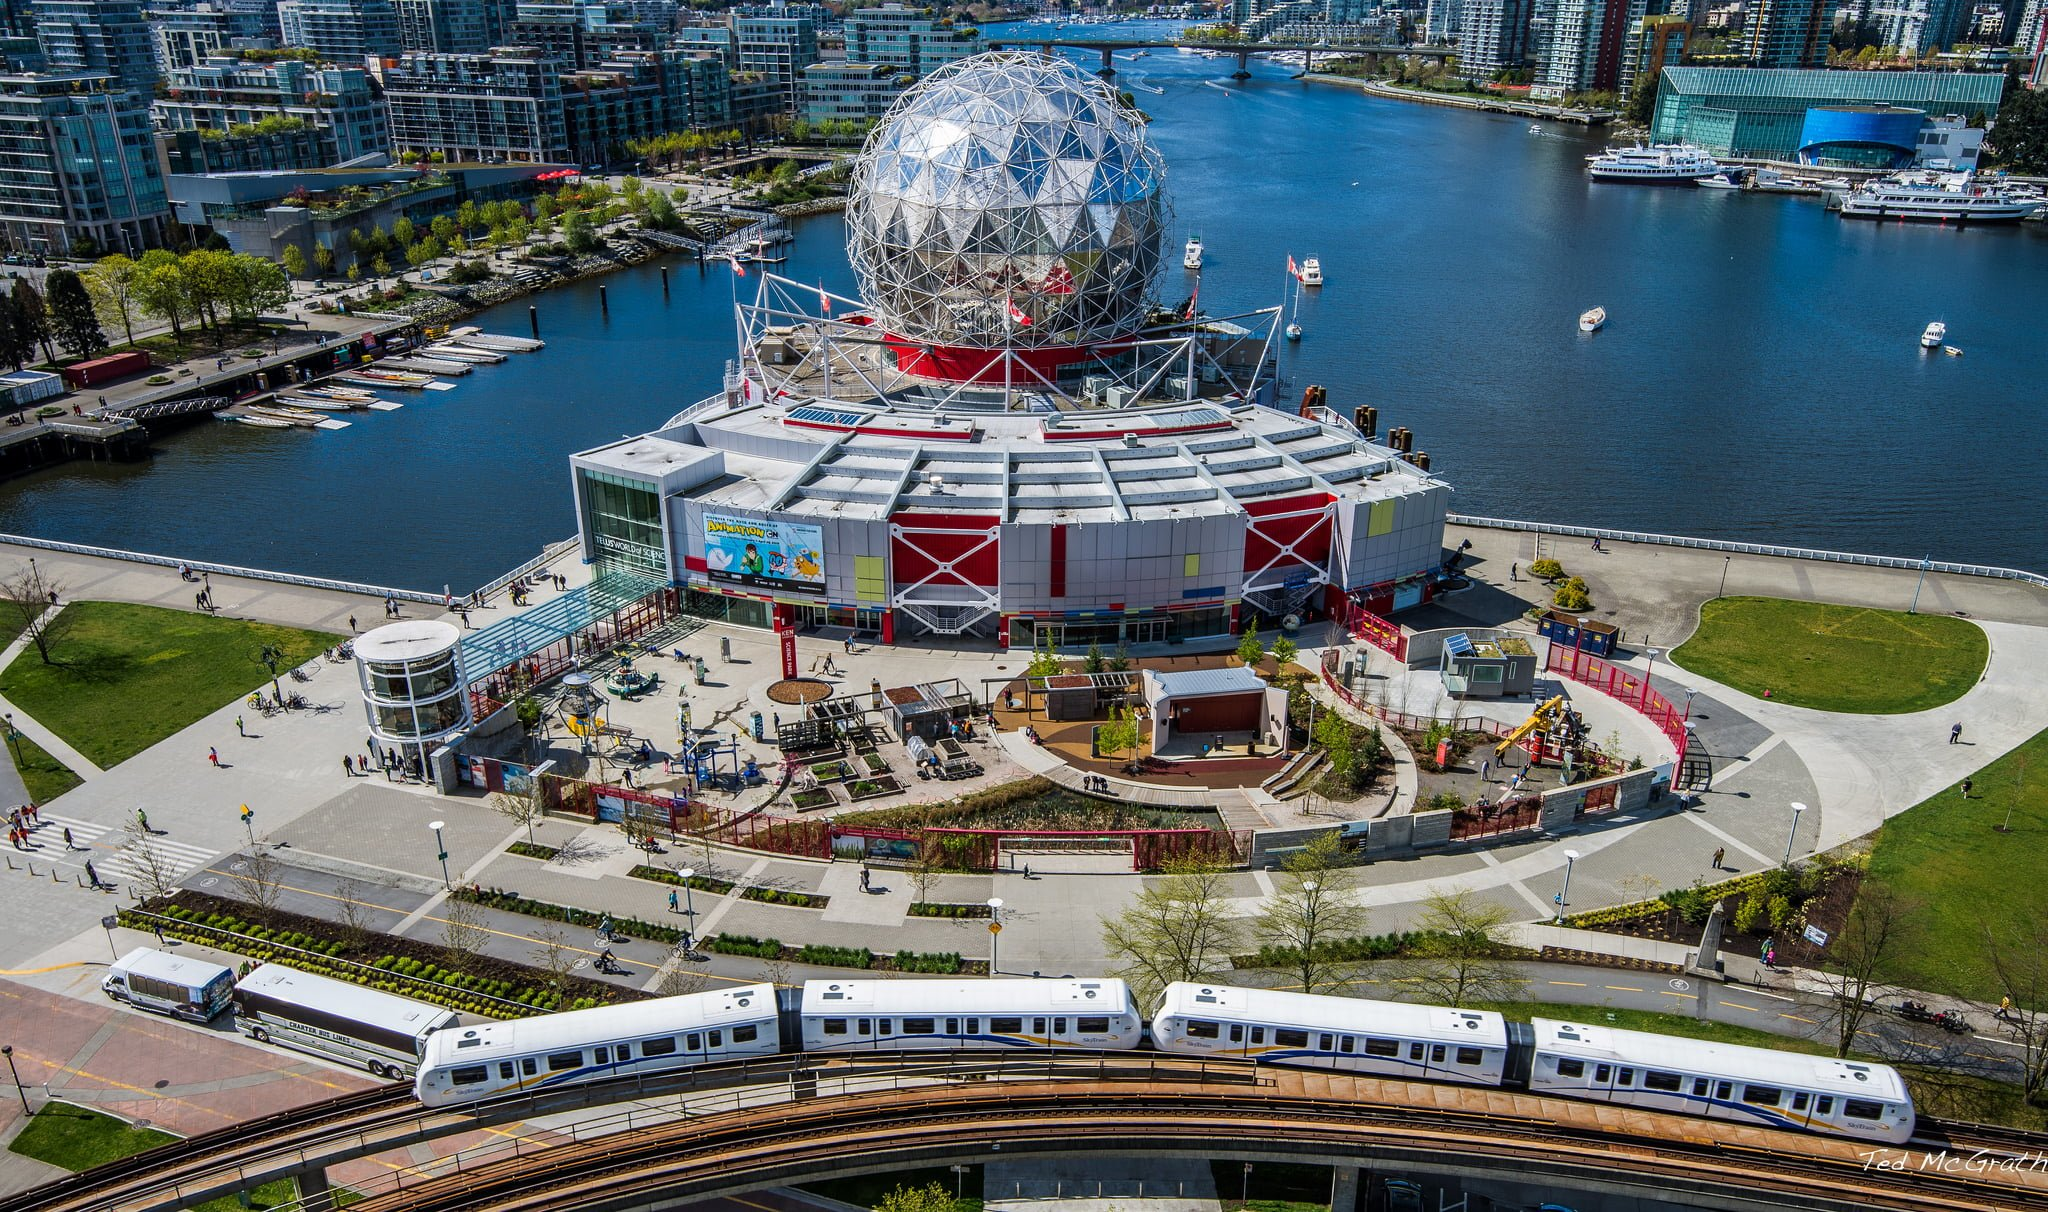 Science World / Things To Do